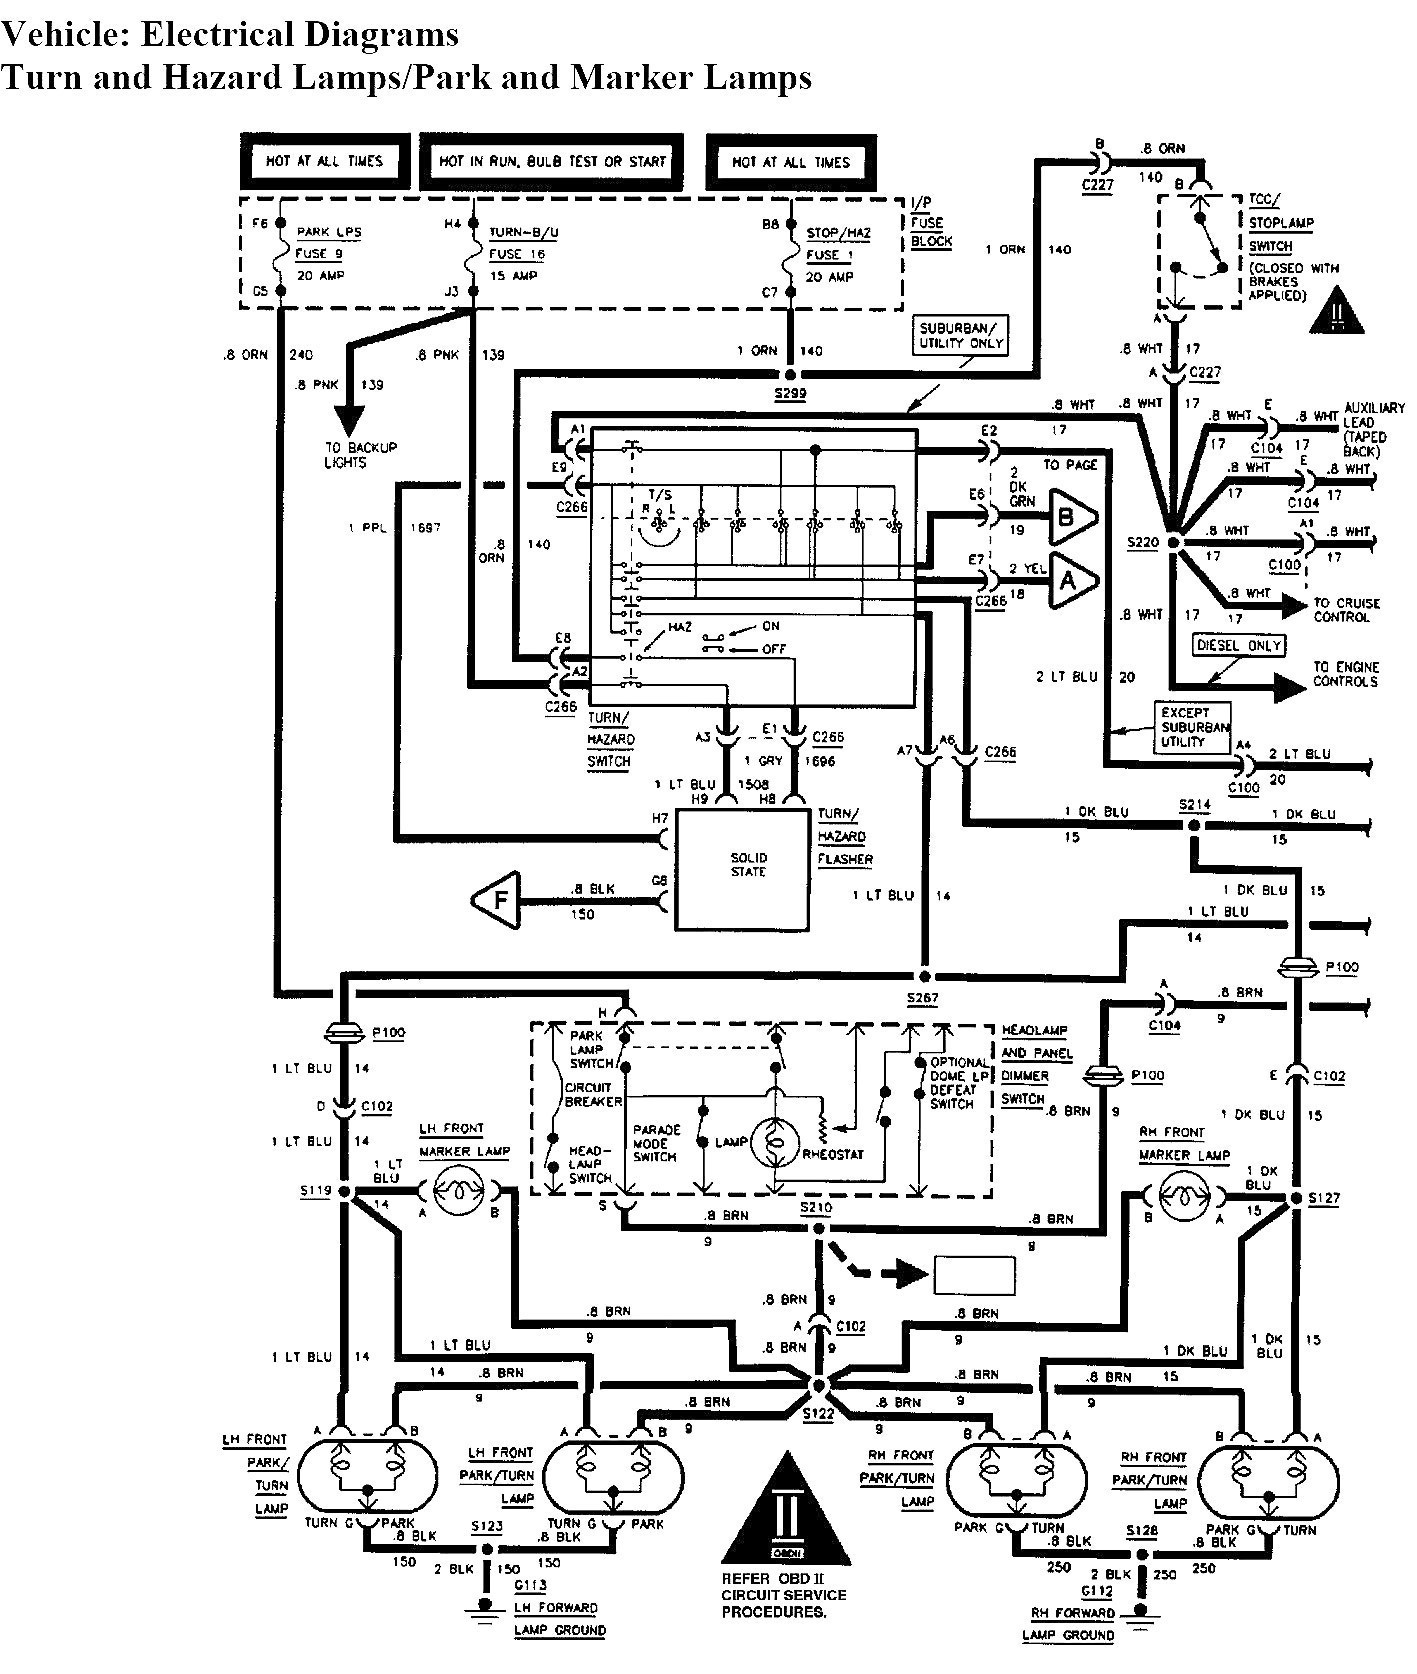 Tail Light Wiring Diagram For Chevy Truck